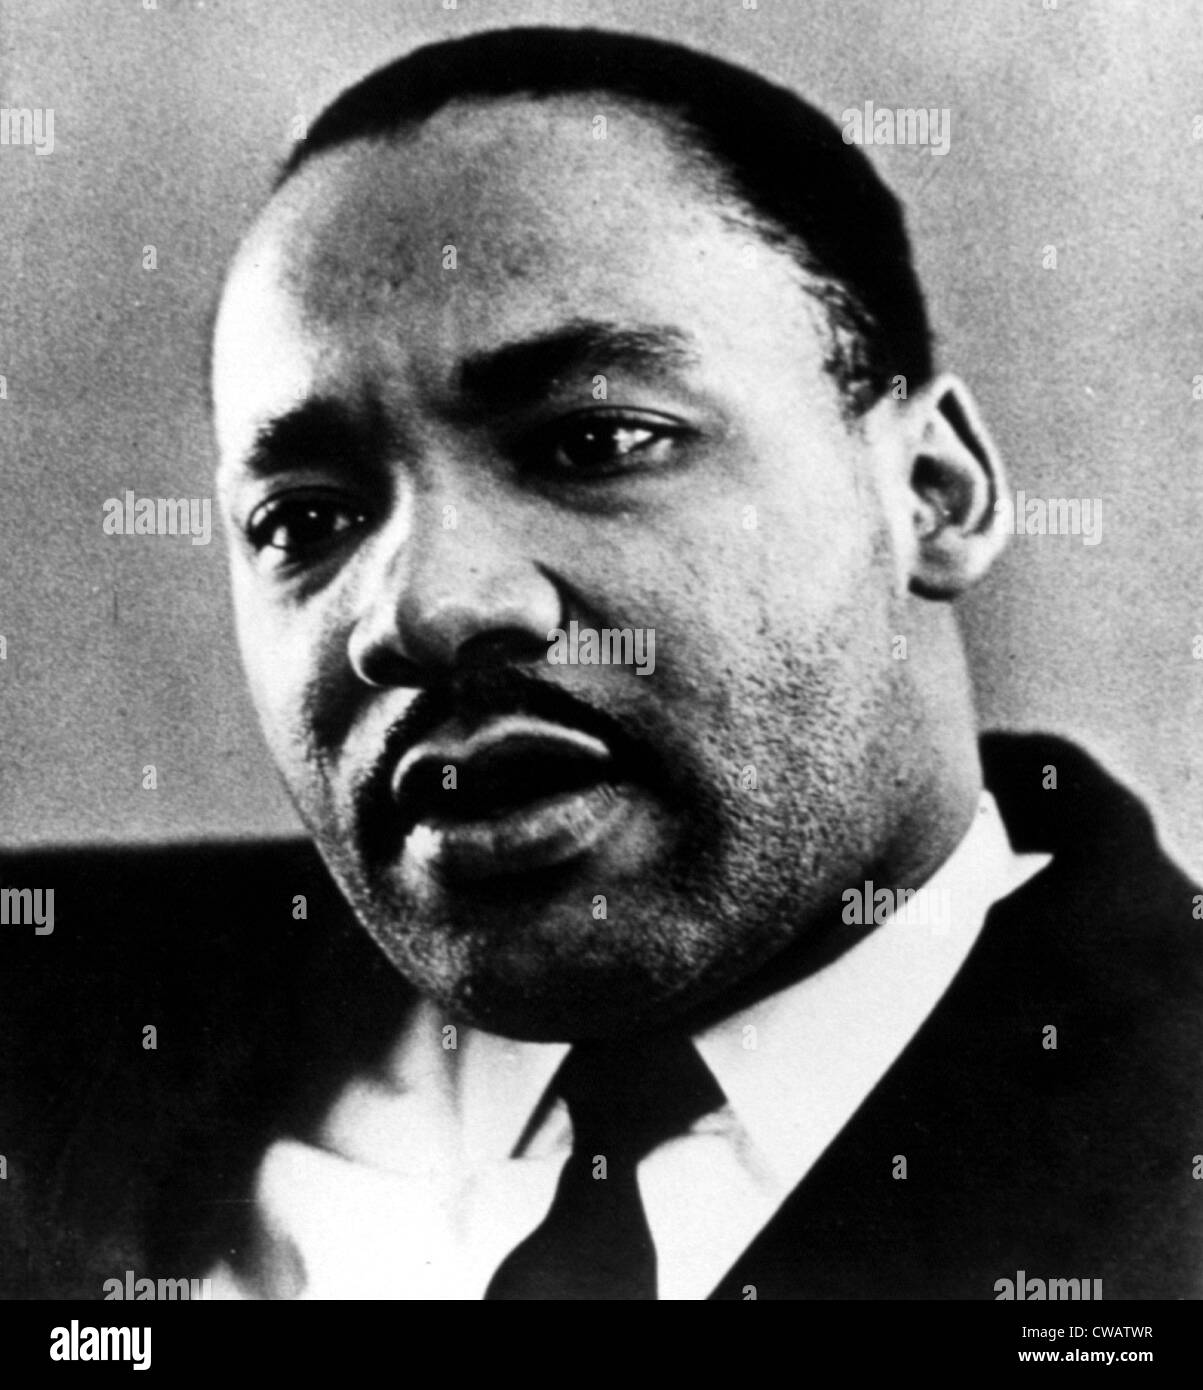 MARTIN LUTHER KING, JR.. Courtesy: CSU Archives / Everett Collection - Stock Image